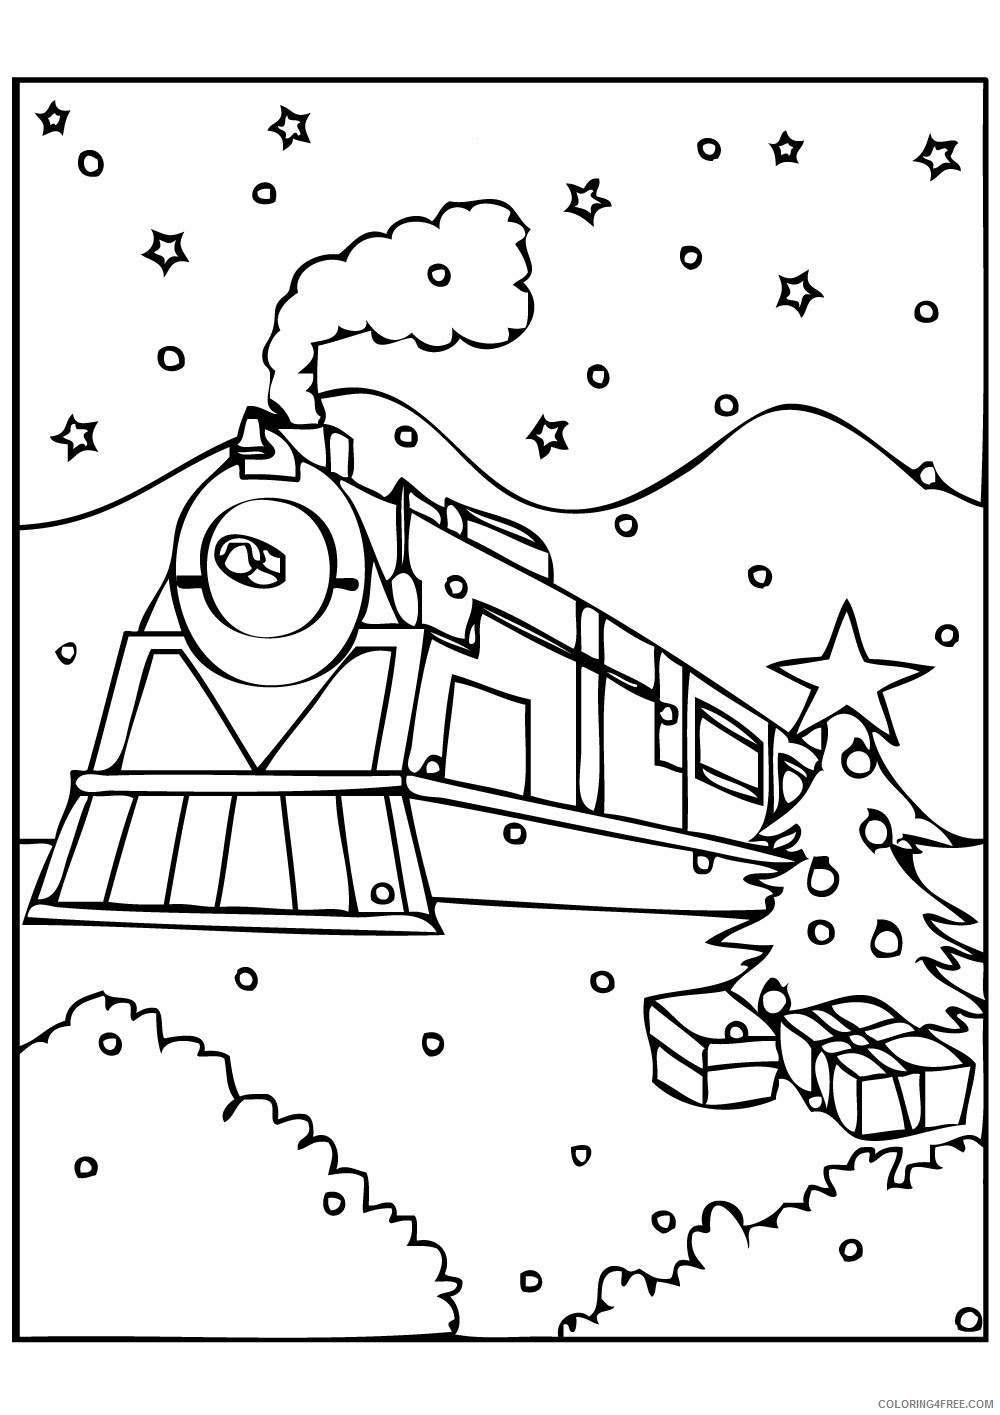 Polar Express Coloring Pages Coloring Pages Amazing Free Dot Marker Coloring Pages Photo Ideas